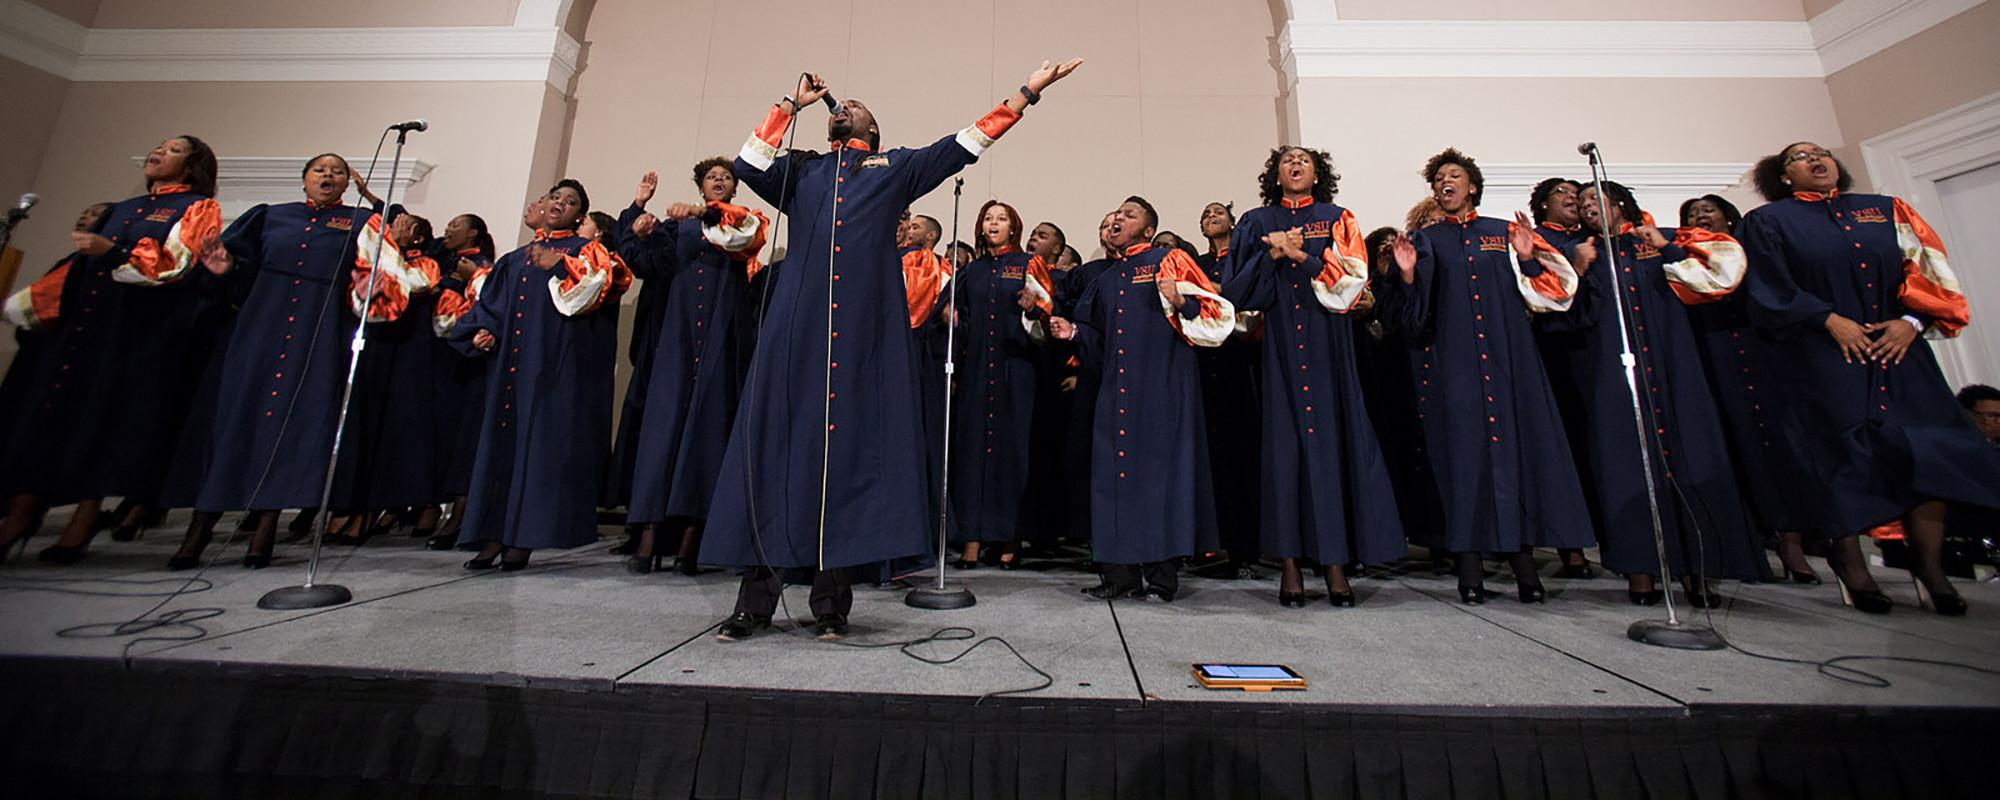 Virginia State University Gospel Chorale performing.